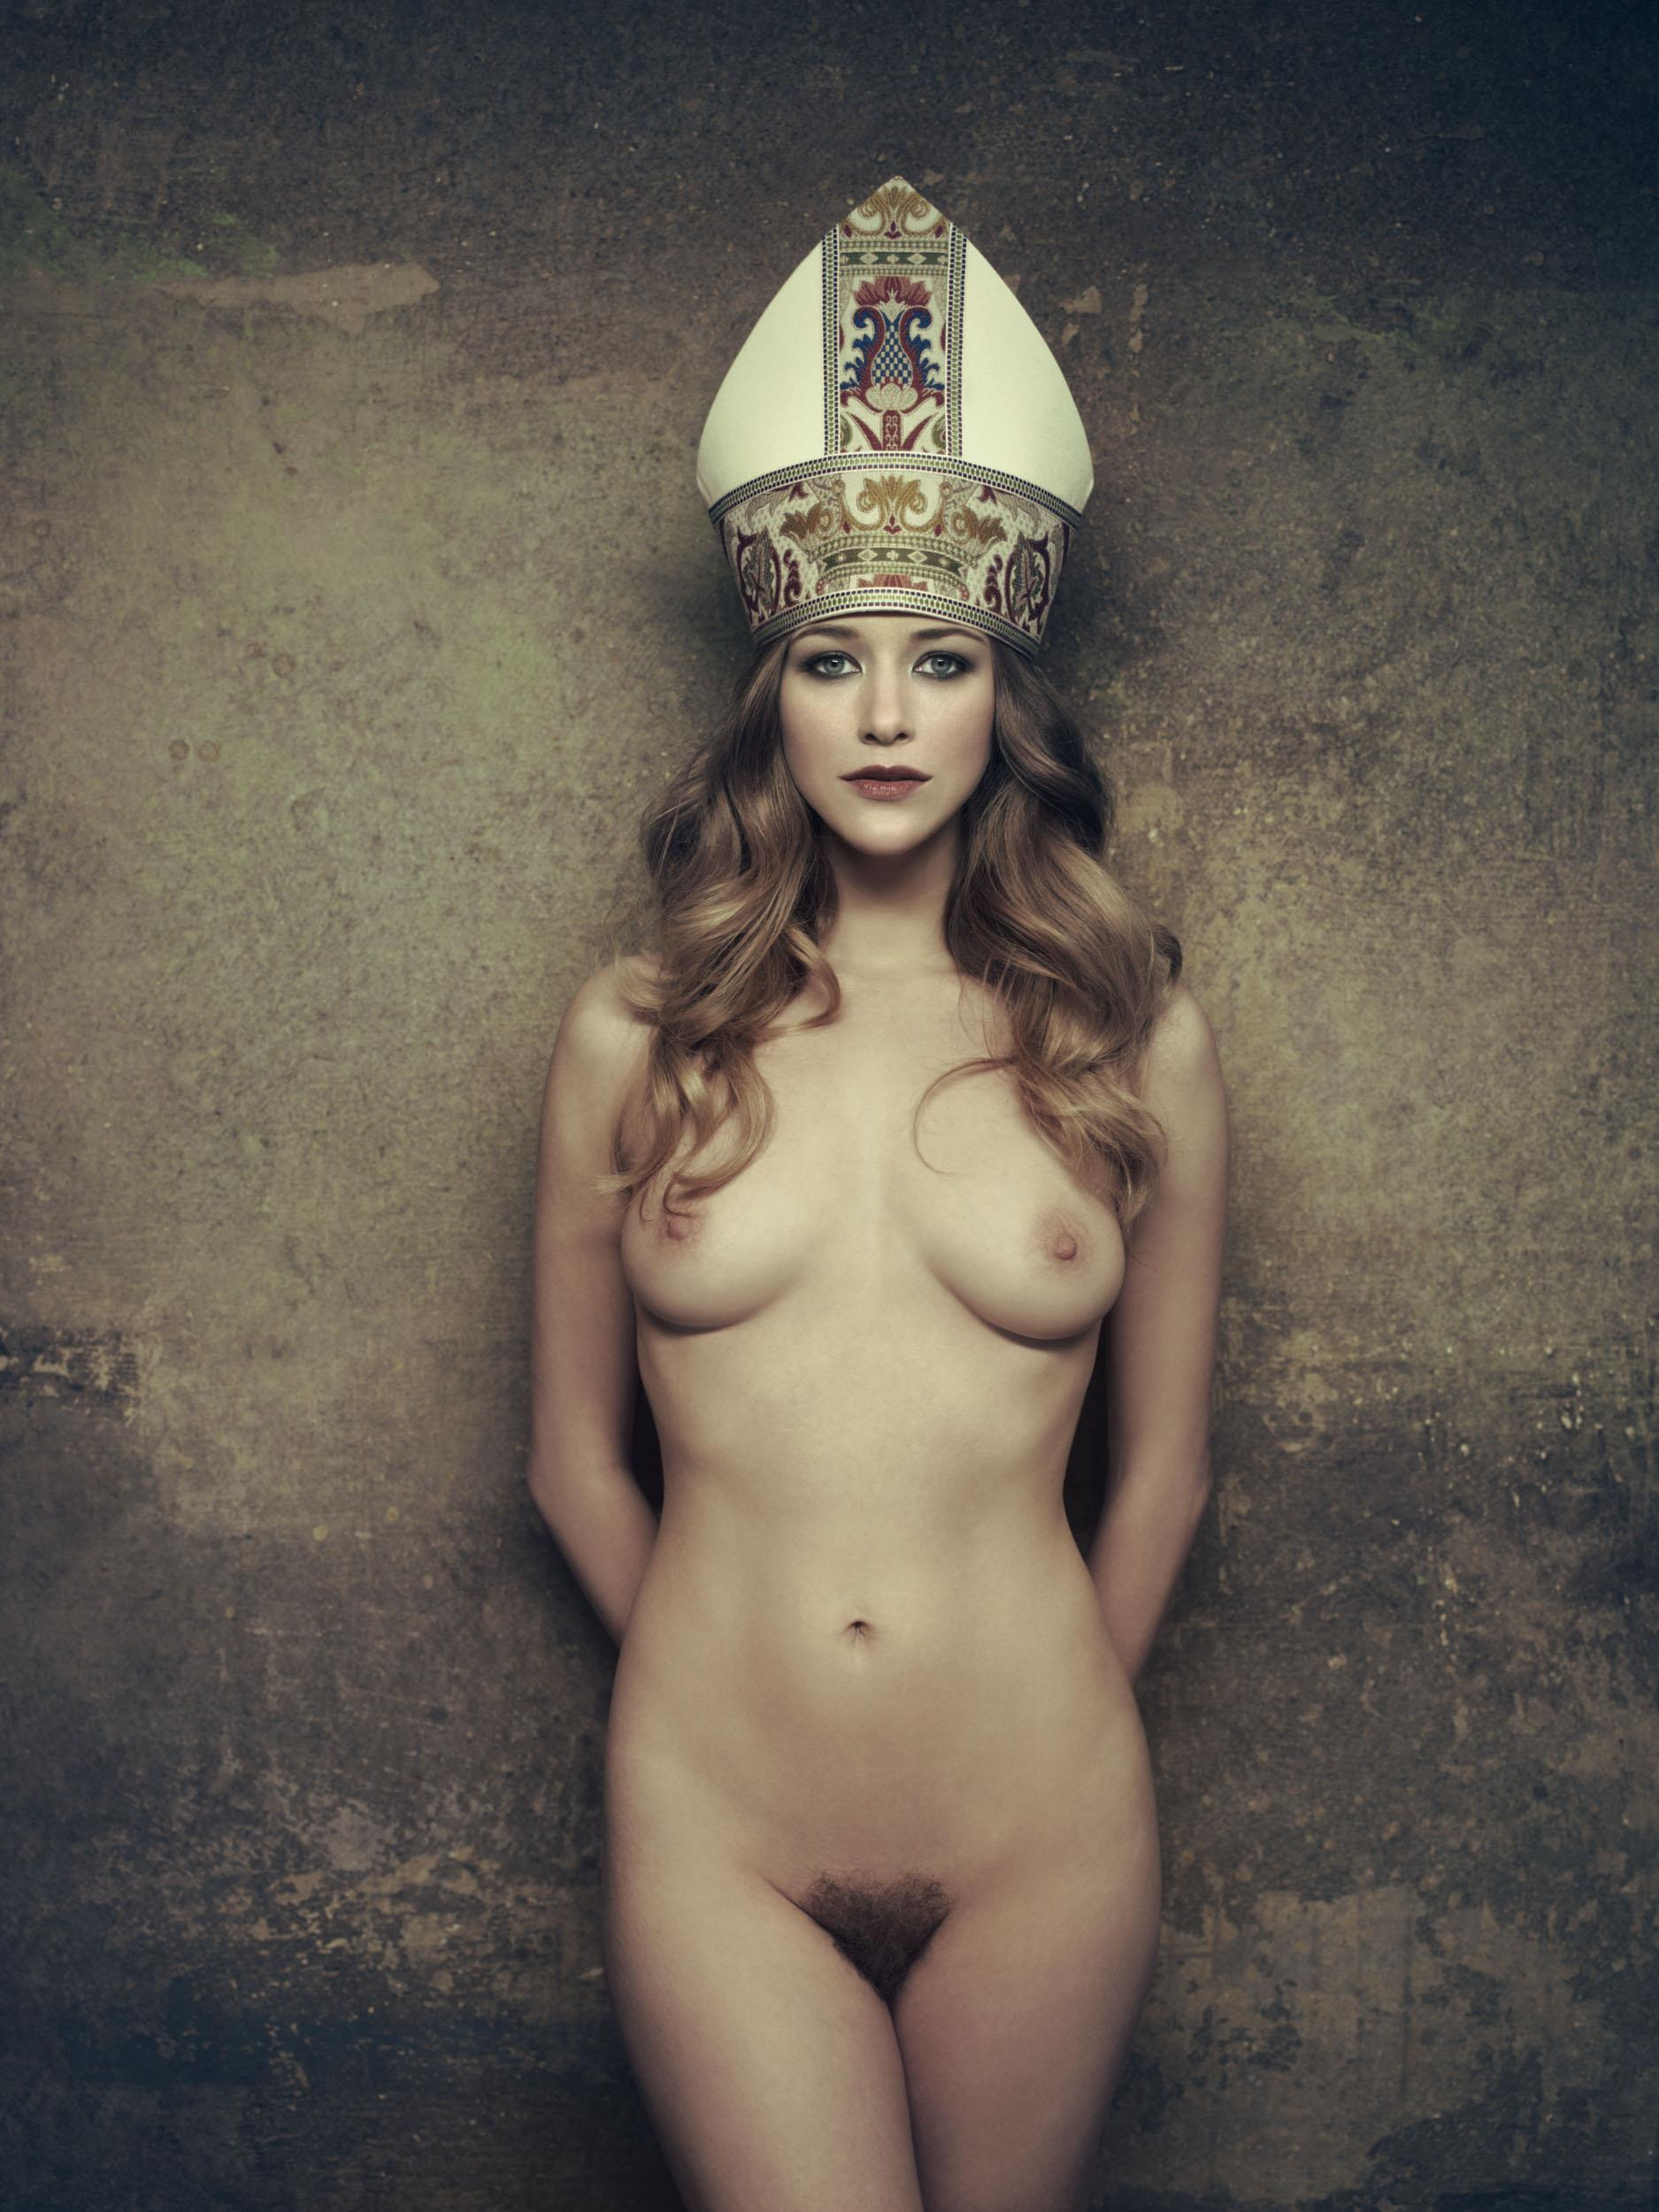 HighPriestess | Marc Lagrange, a fine art photographer